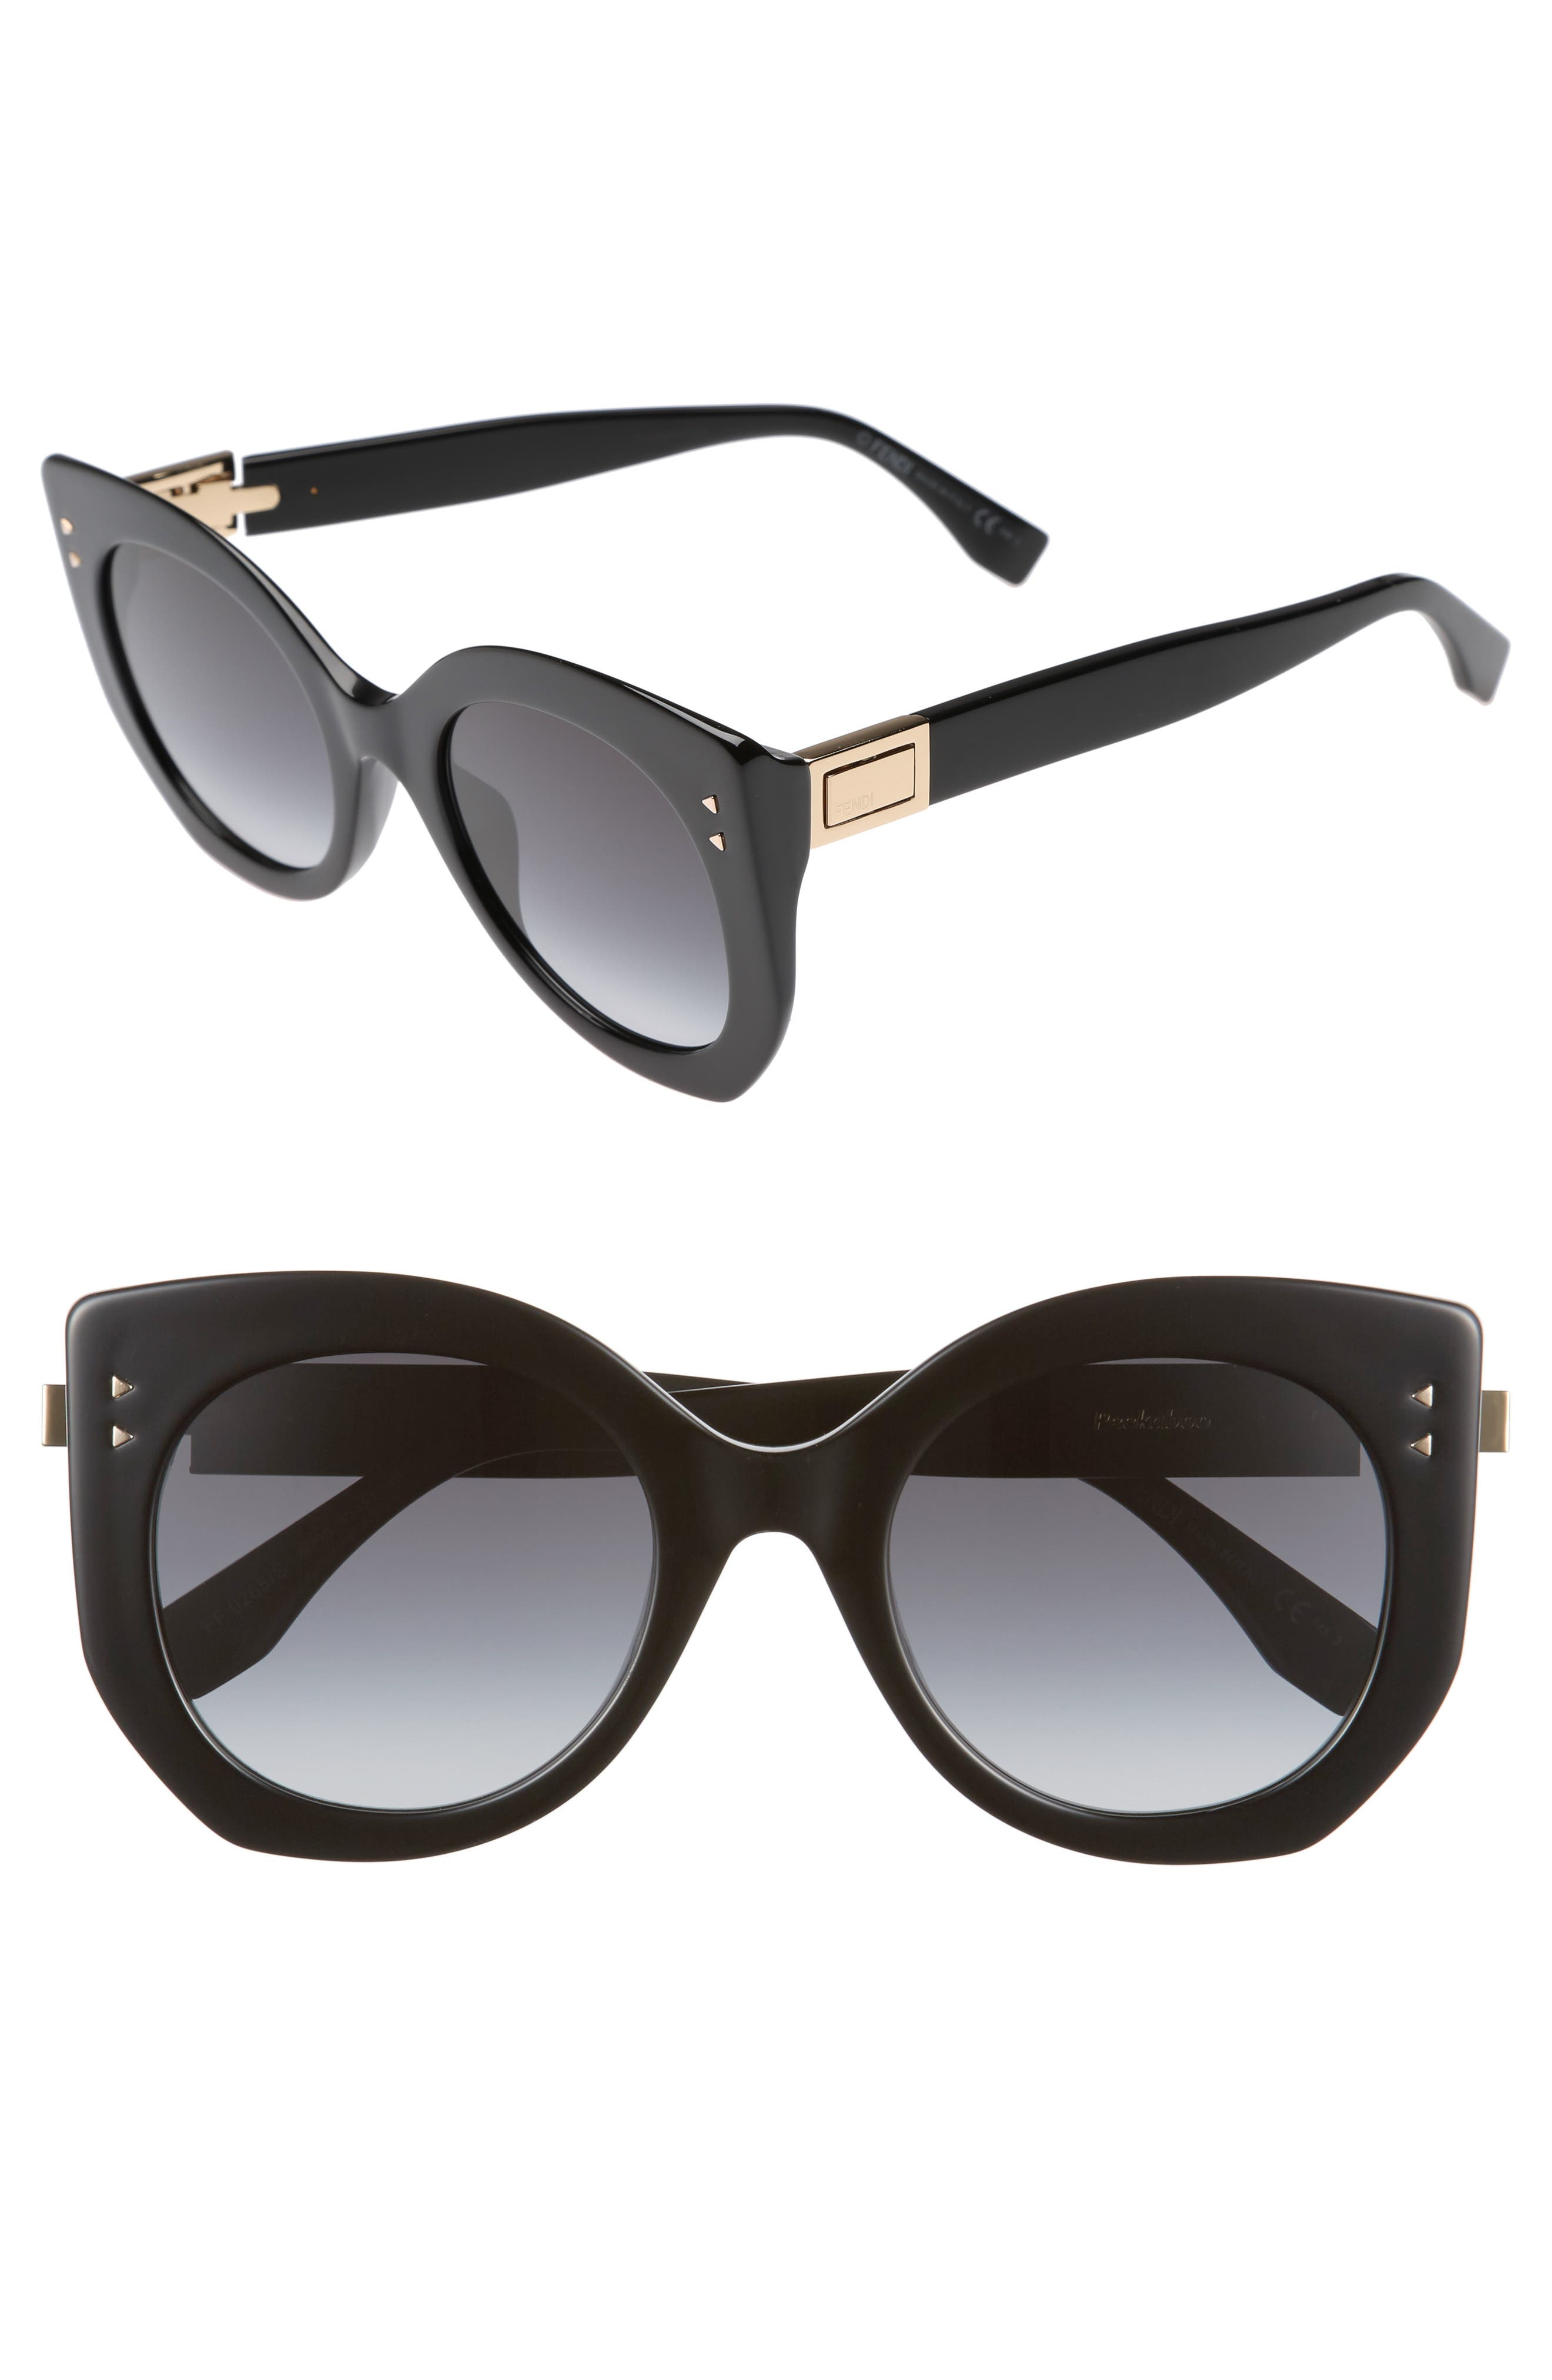 52mm Butterfly Sunglasses,                             Main thumbnail 1, color,                             001